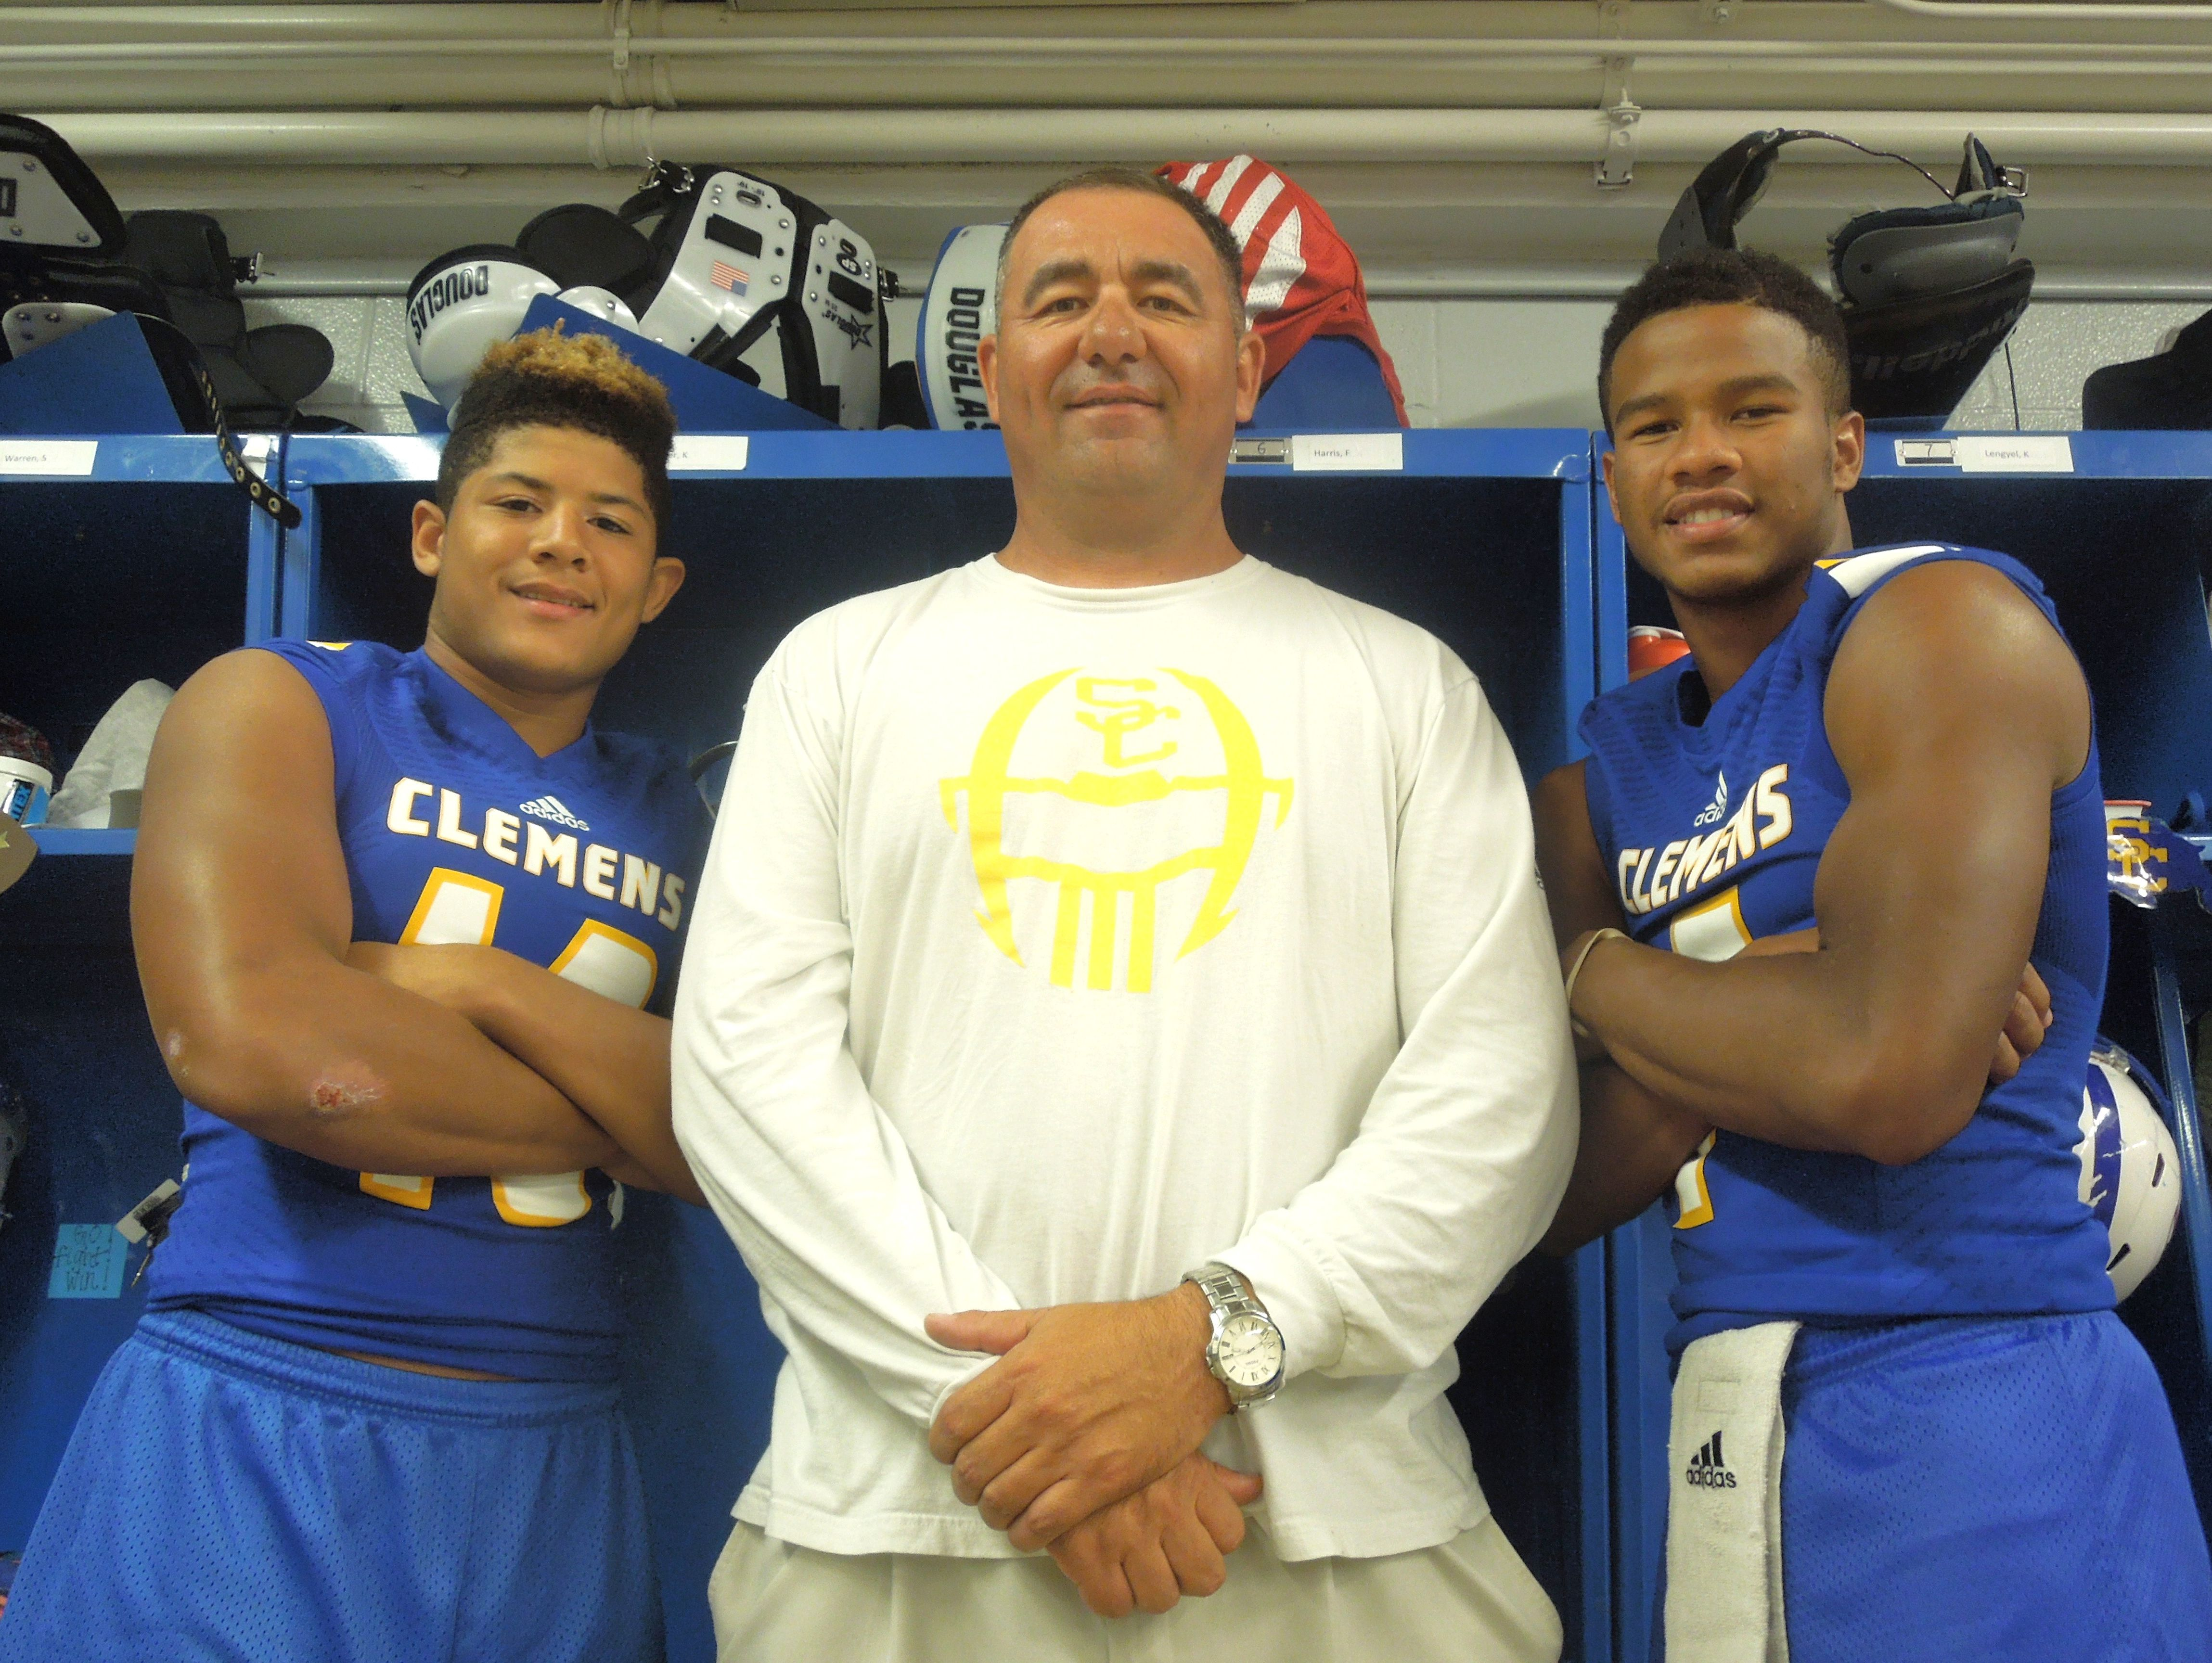 Clemens coach Jared Johnston has relied on senior safety Mark Westbrook, left, and prolific junior quarterback Frank Harris to lead the Buffaloes this season.